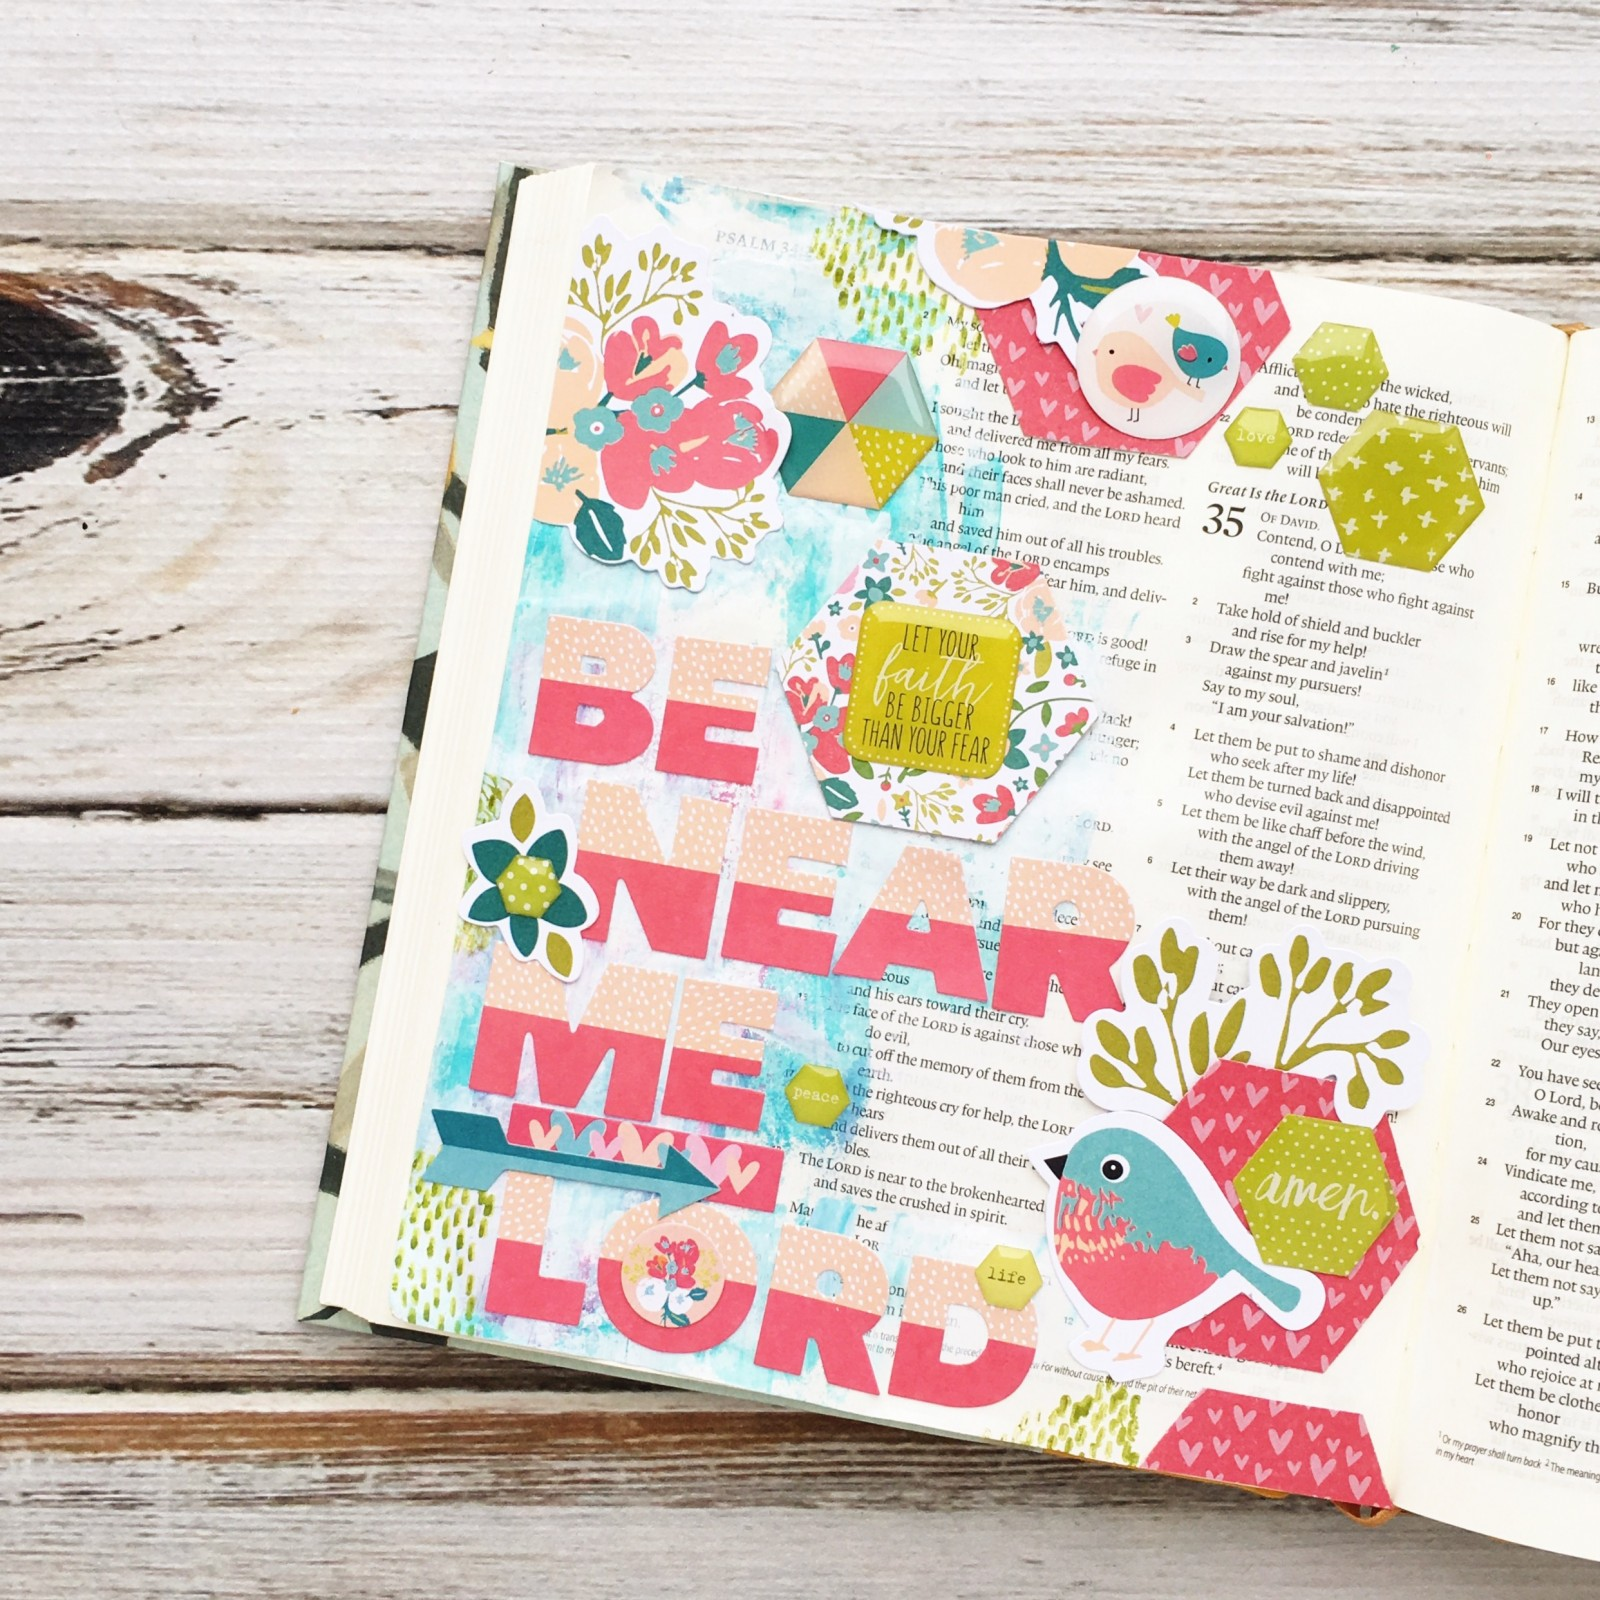 mixed media Bible art journaling entry Psalm 34:18 - Be near the broken hearted by Heather Greenwood